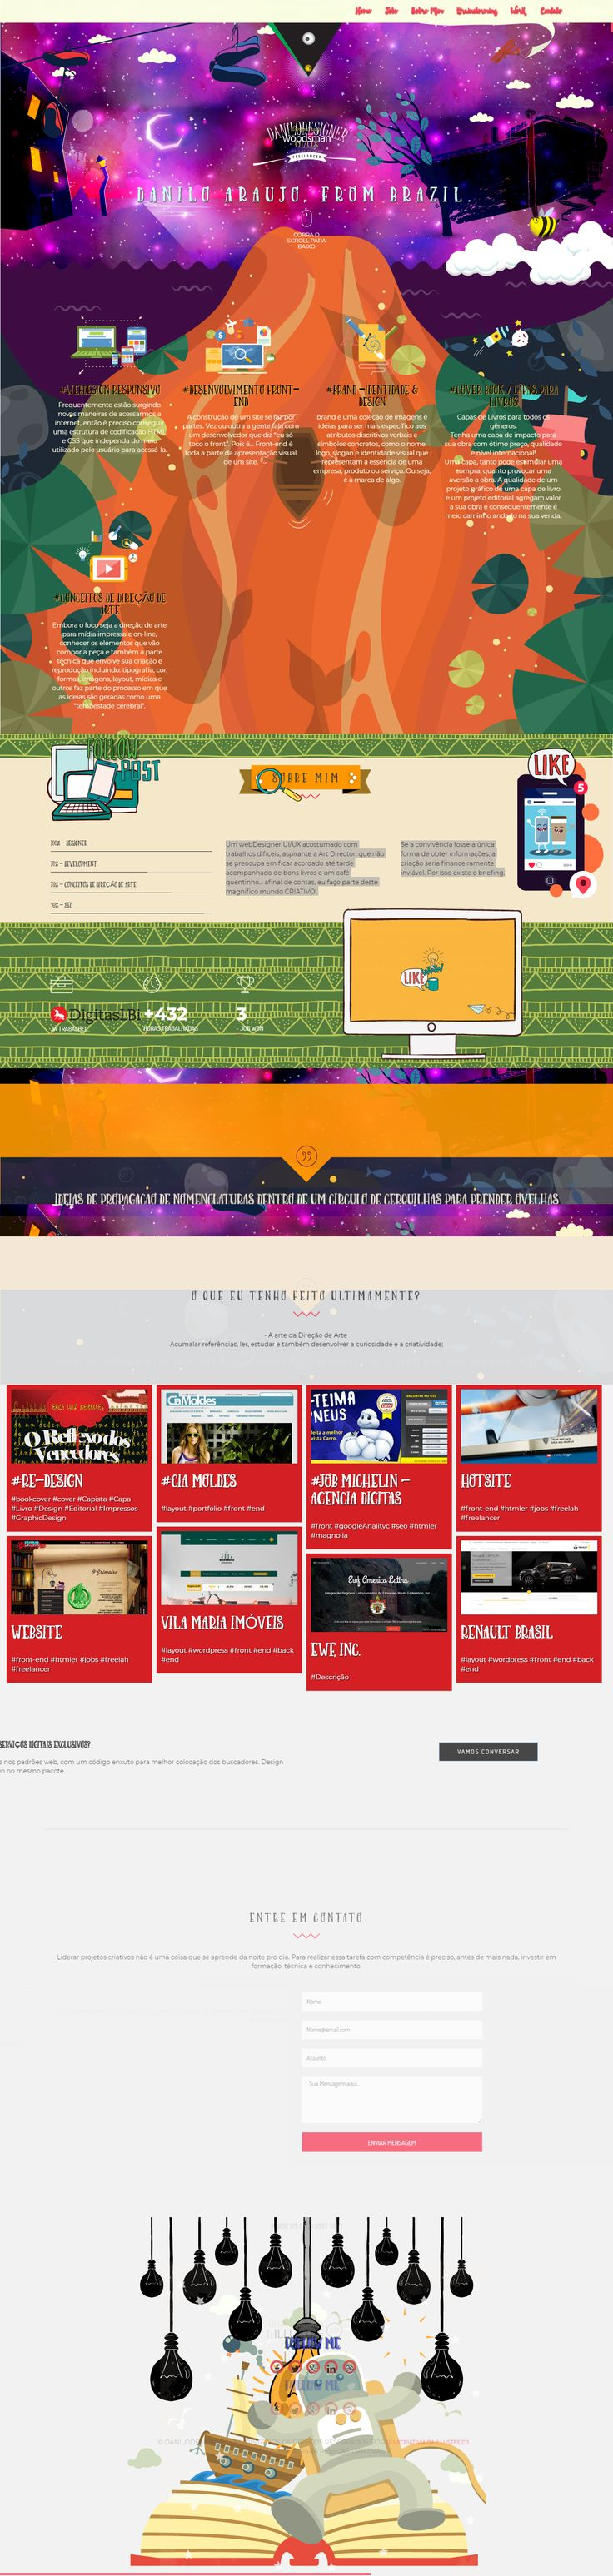 The 25 best jquery show animation ideas on pinterest flat web portfolio danilodesigner html5 css3 layout frontend bootstrap resposive nvjuhfo Images